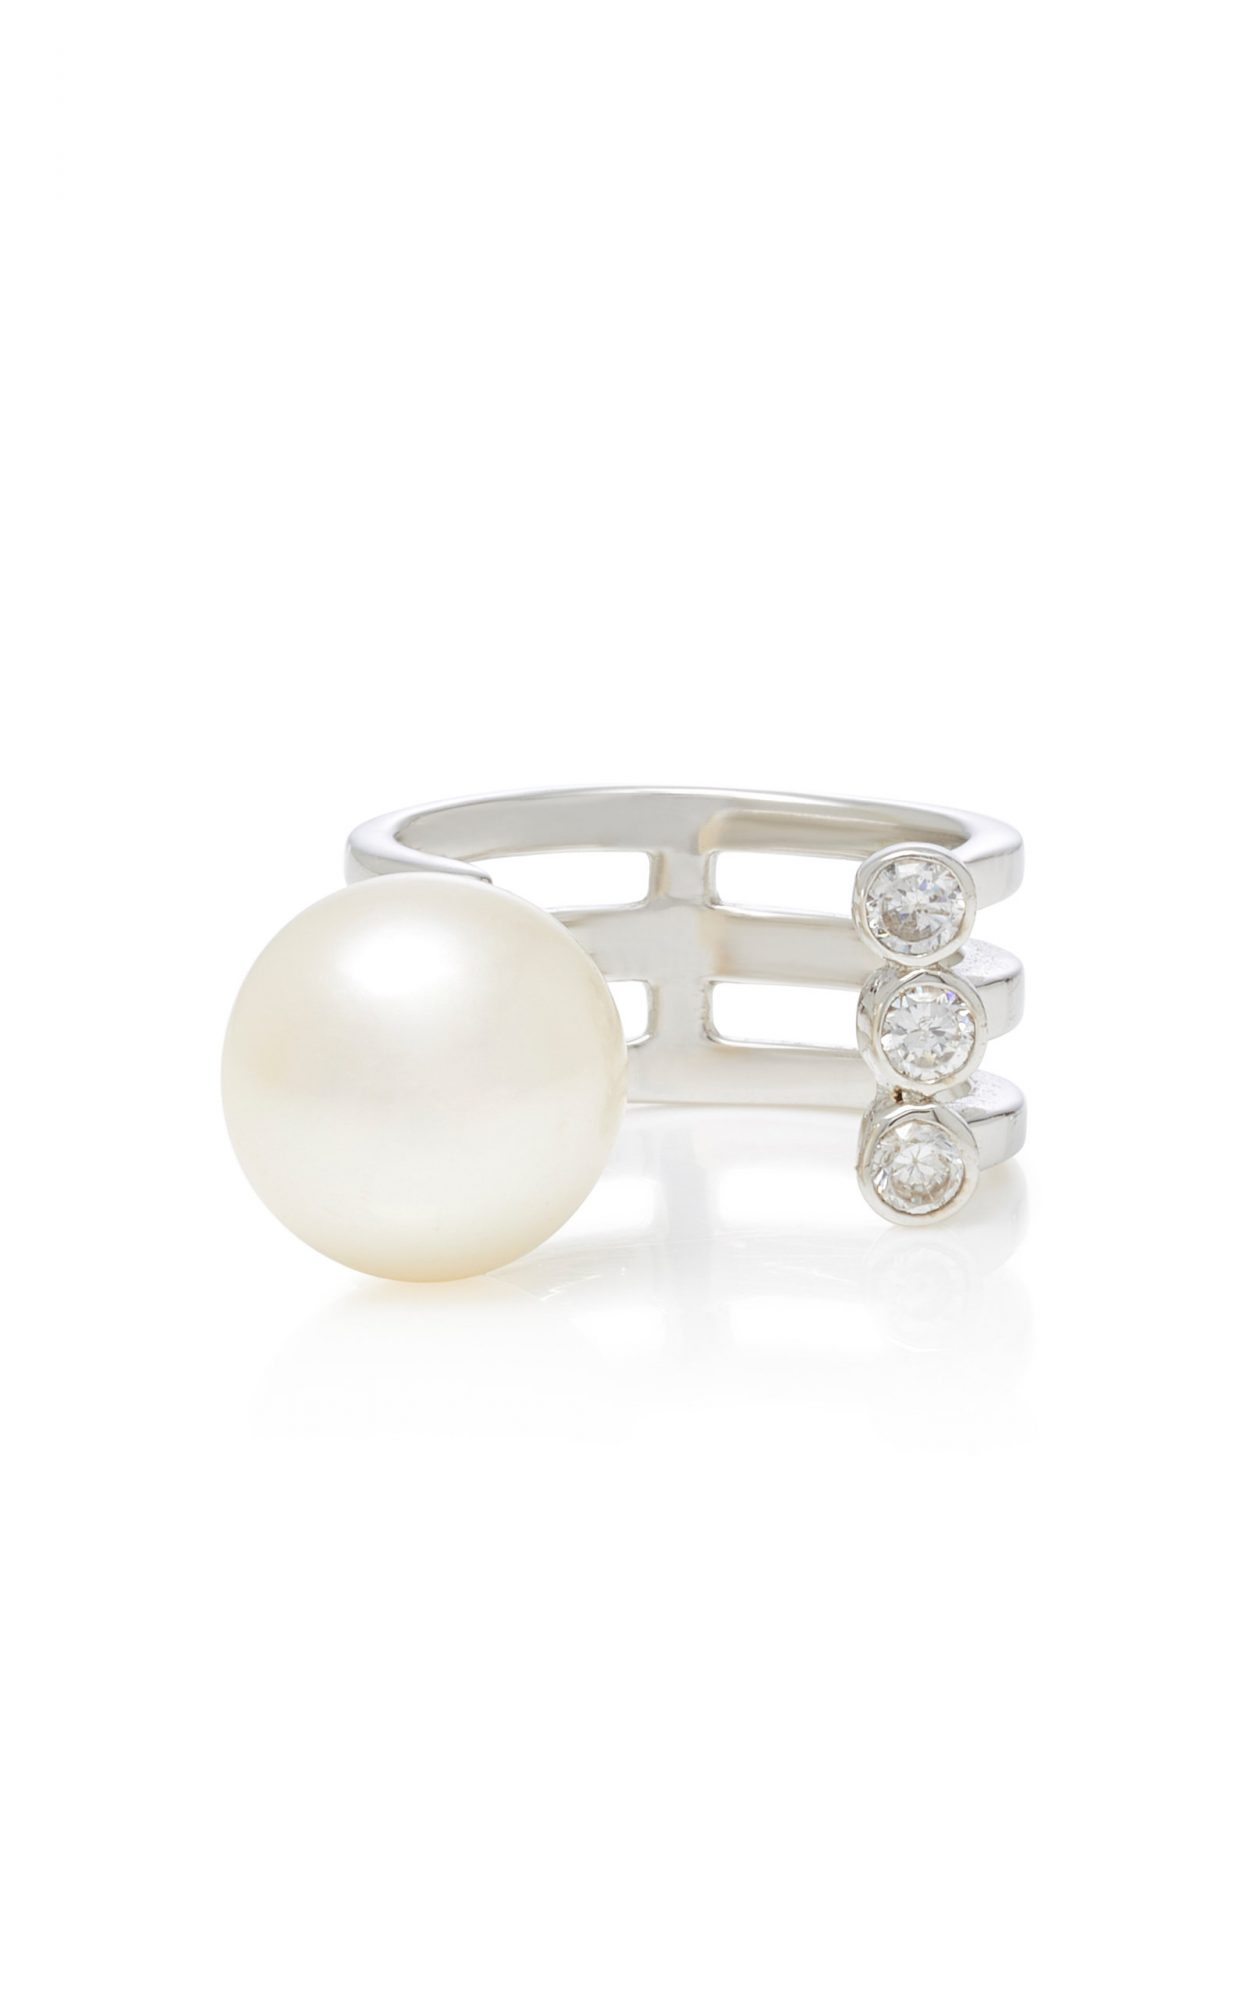 Lynn Ban Jewelry Sterling Silver, Diamond, and Pearl Ring